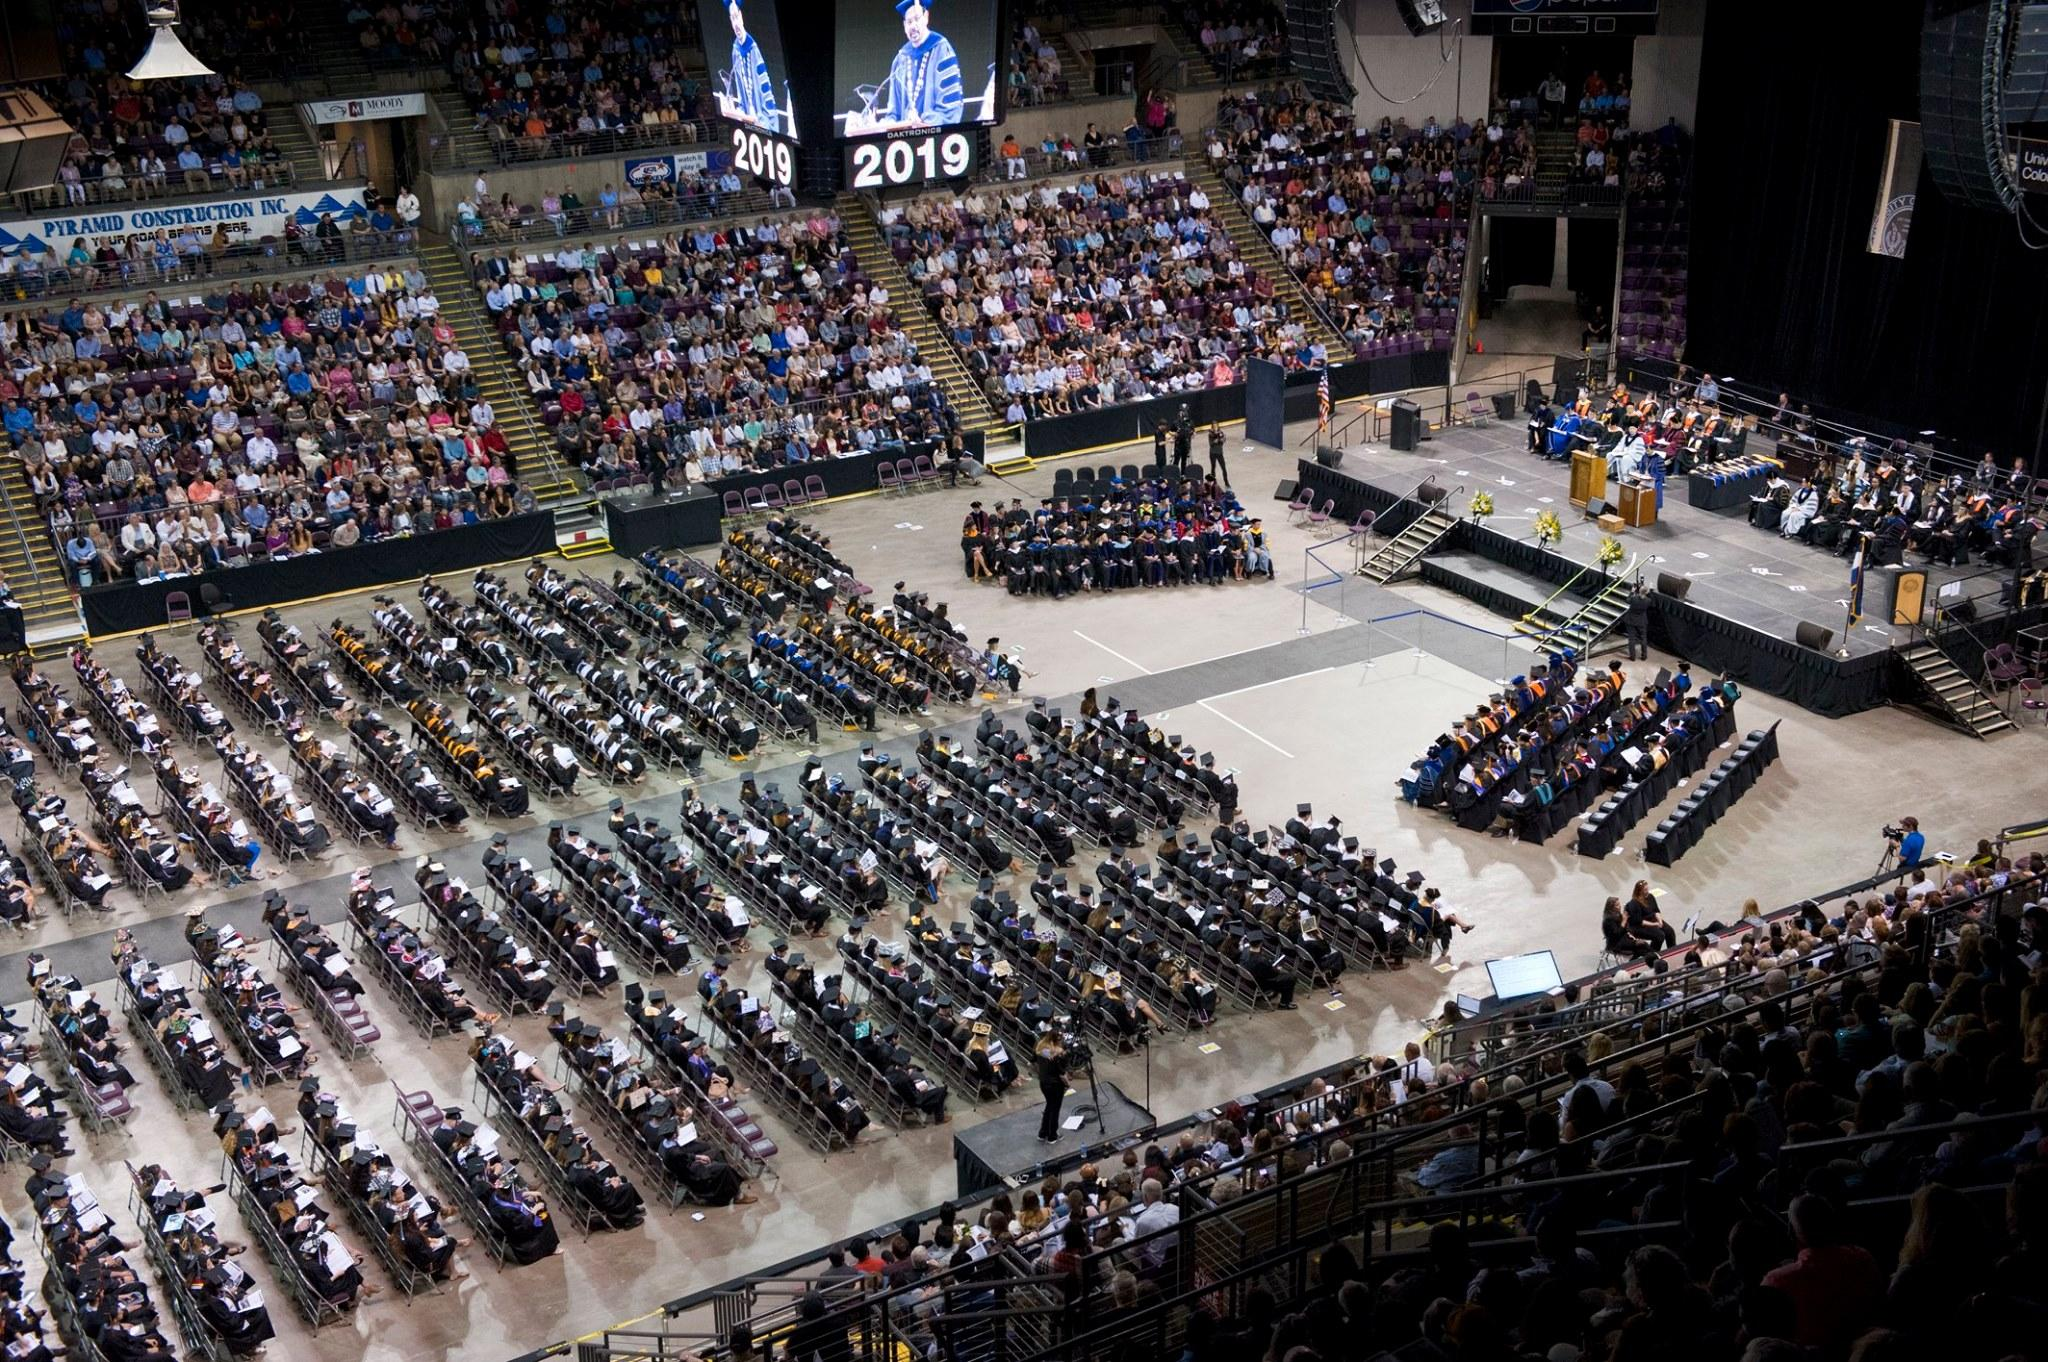 A high angle view during the spring 2019 afternoon commencement ceremony